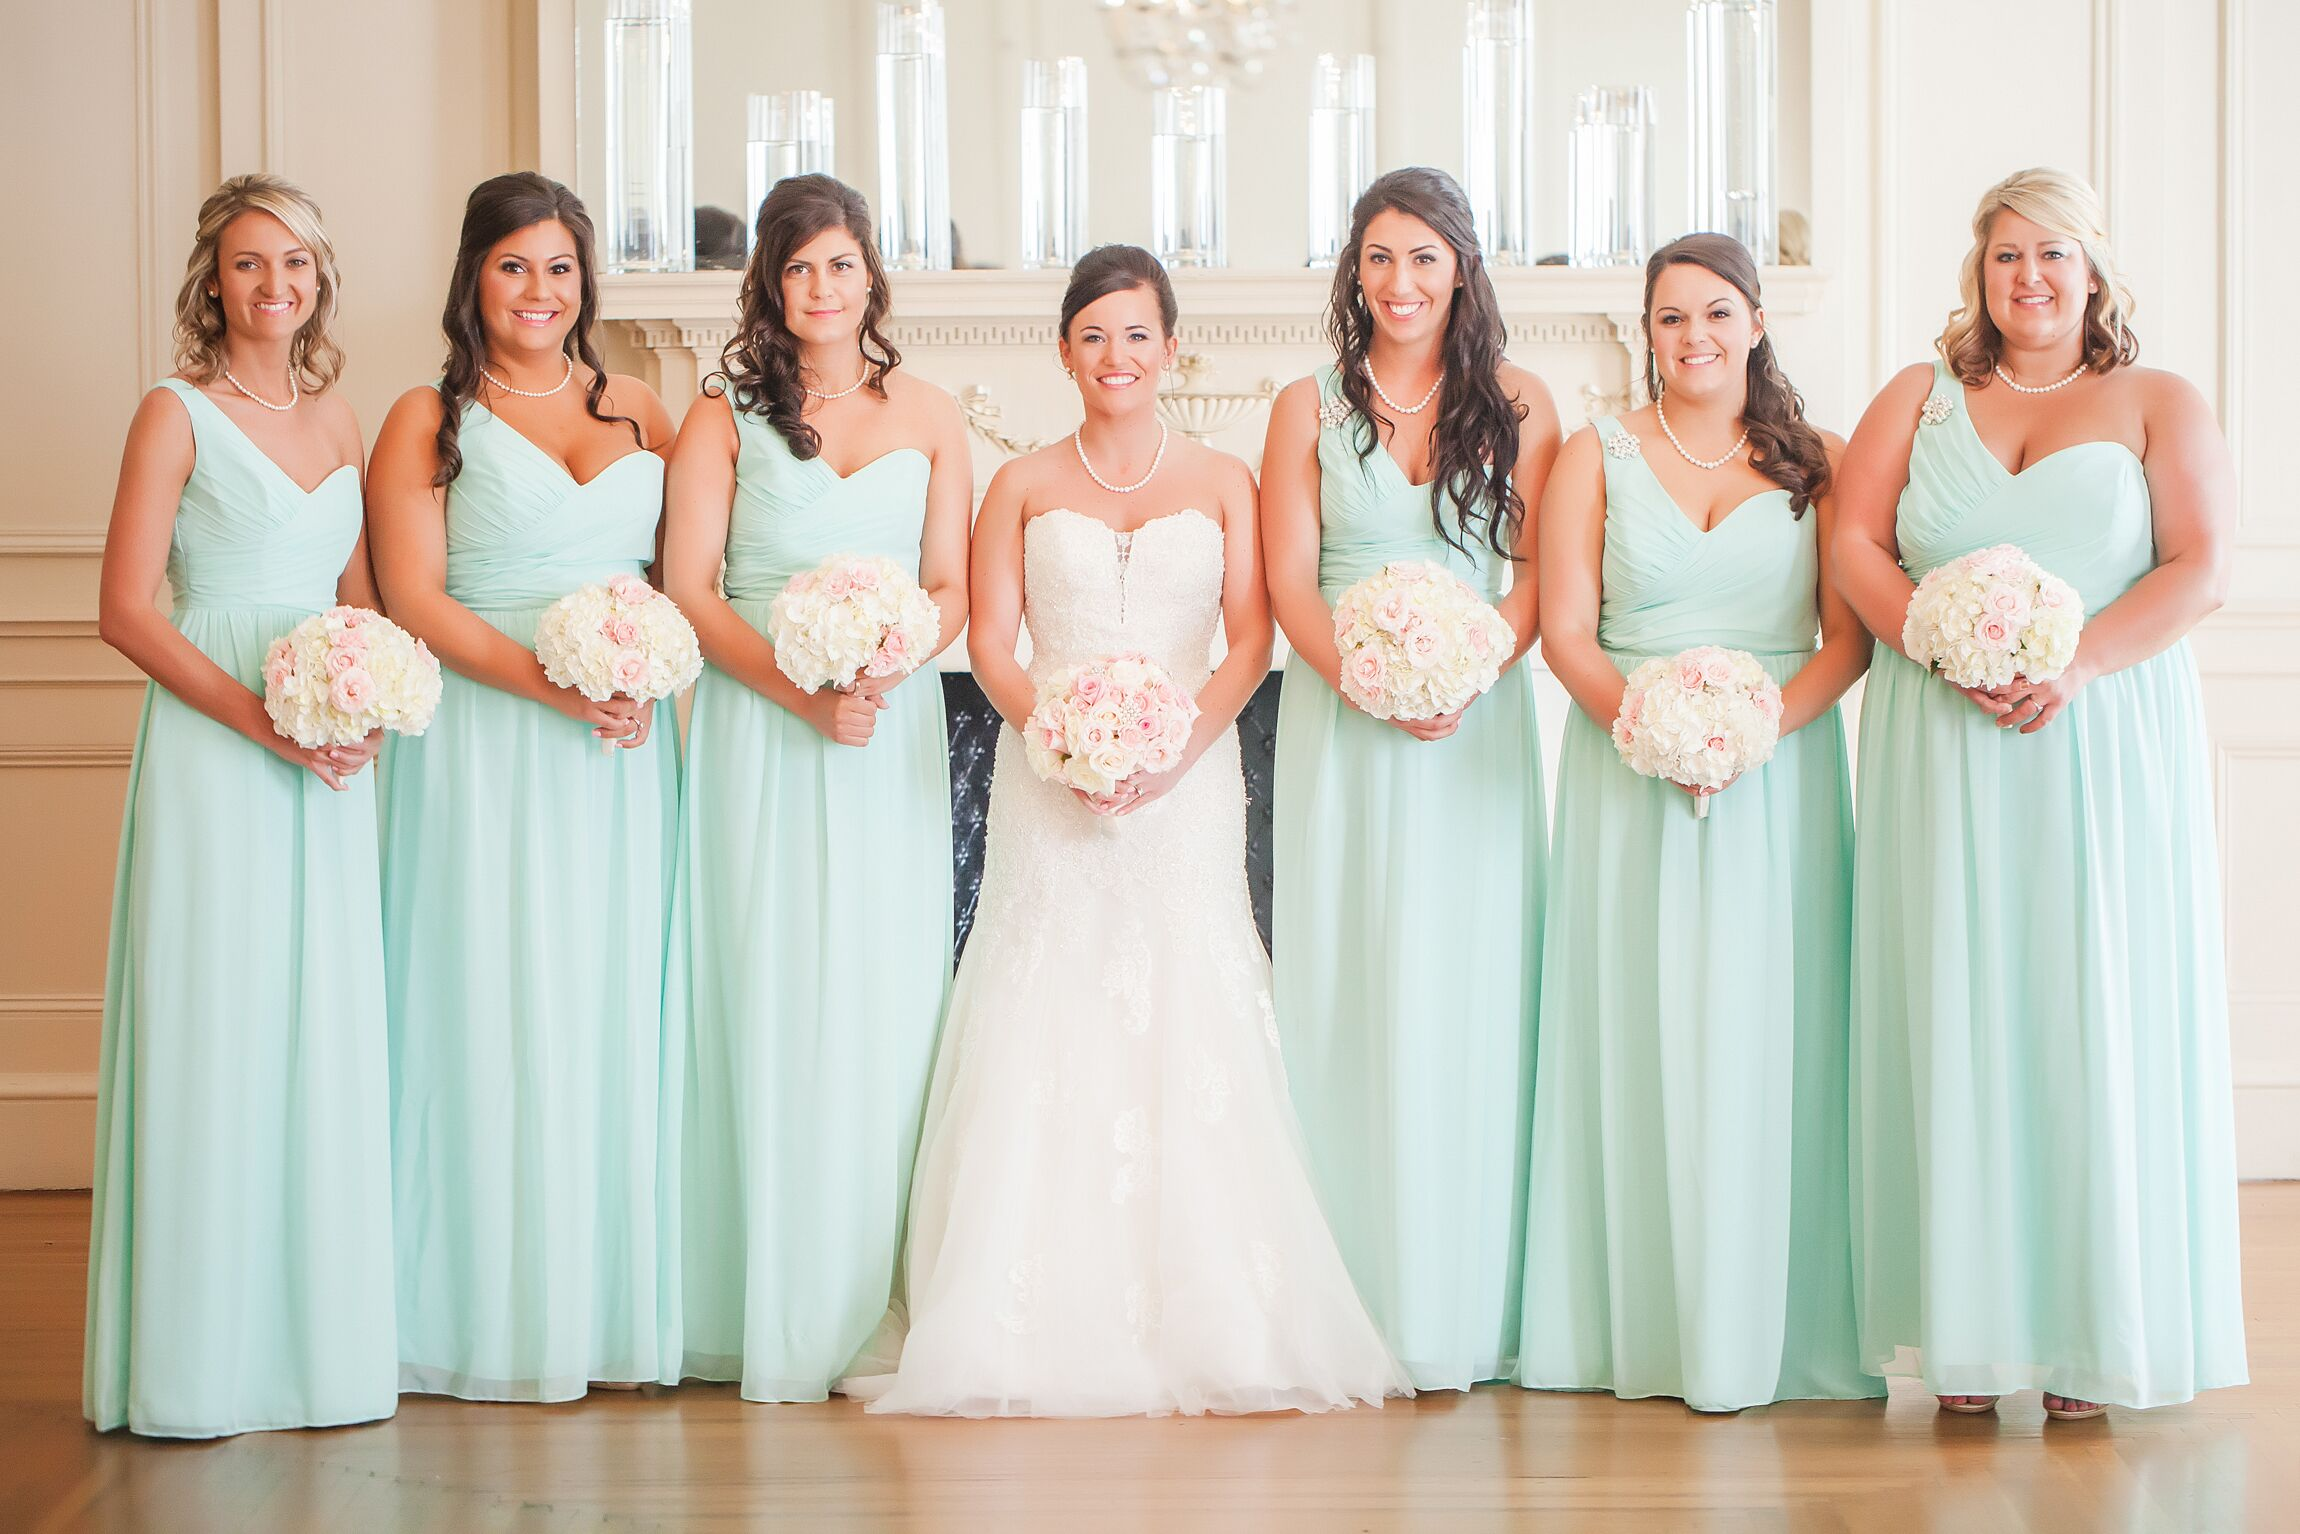 Alfred Angelo One-Shoulder Mint Bridesmaid Dresses